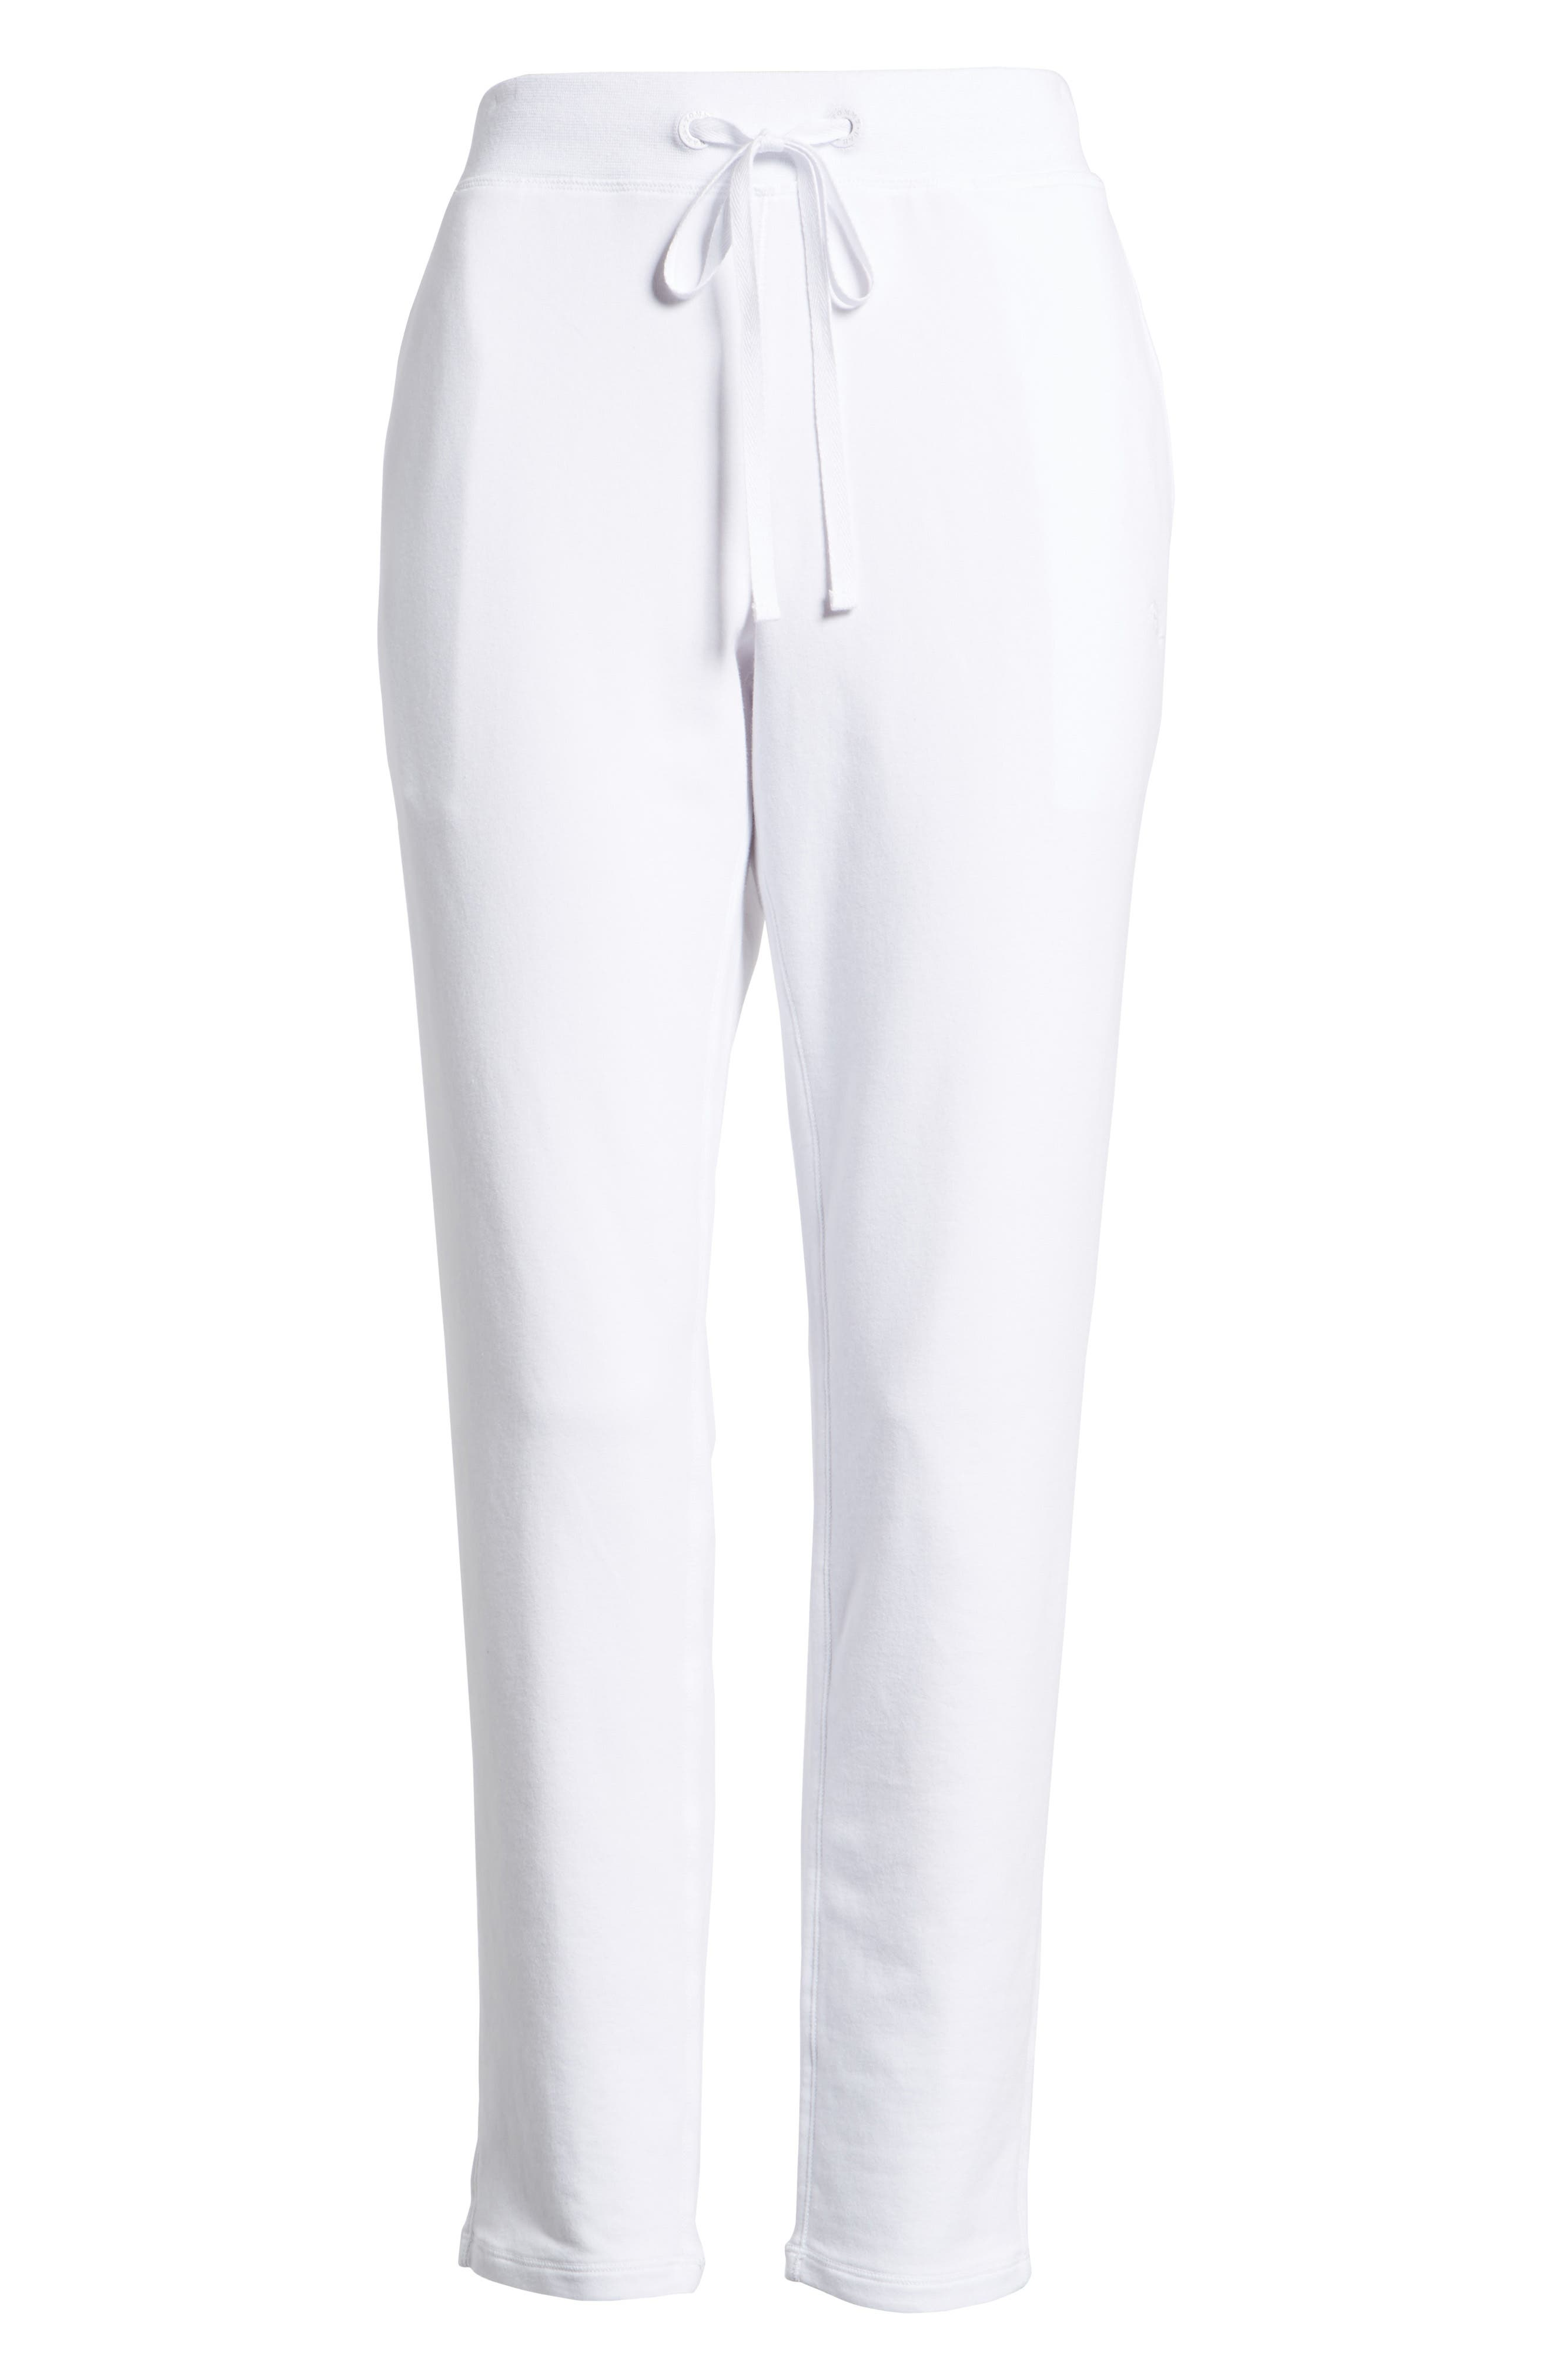 Jen and Terry Pants,                         Main,                         color, White